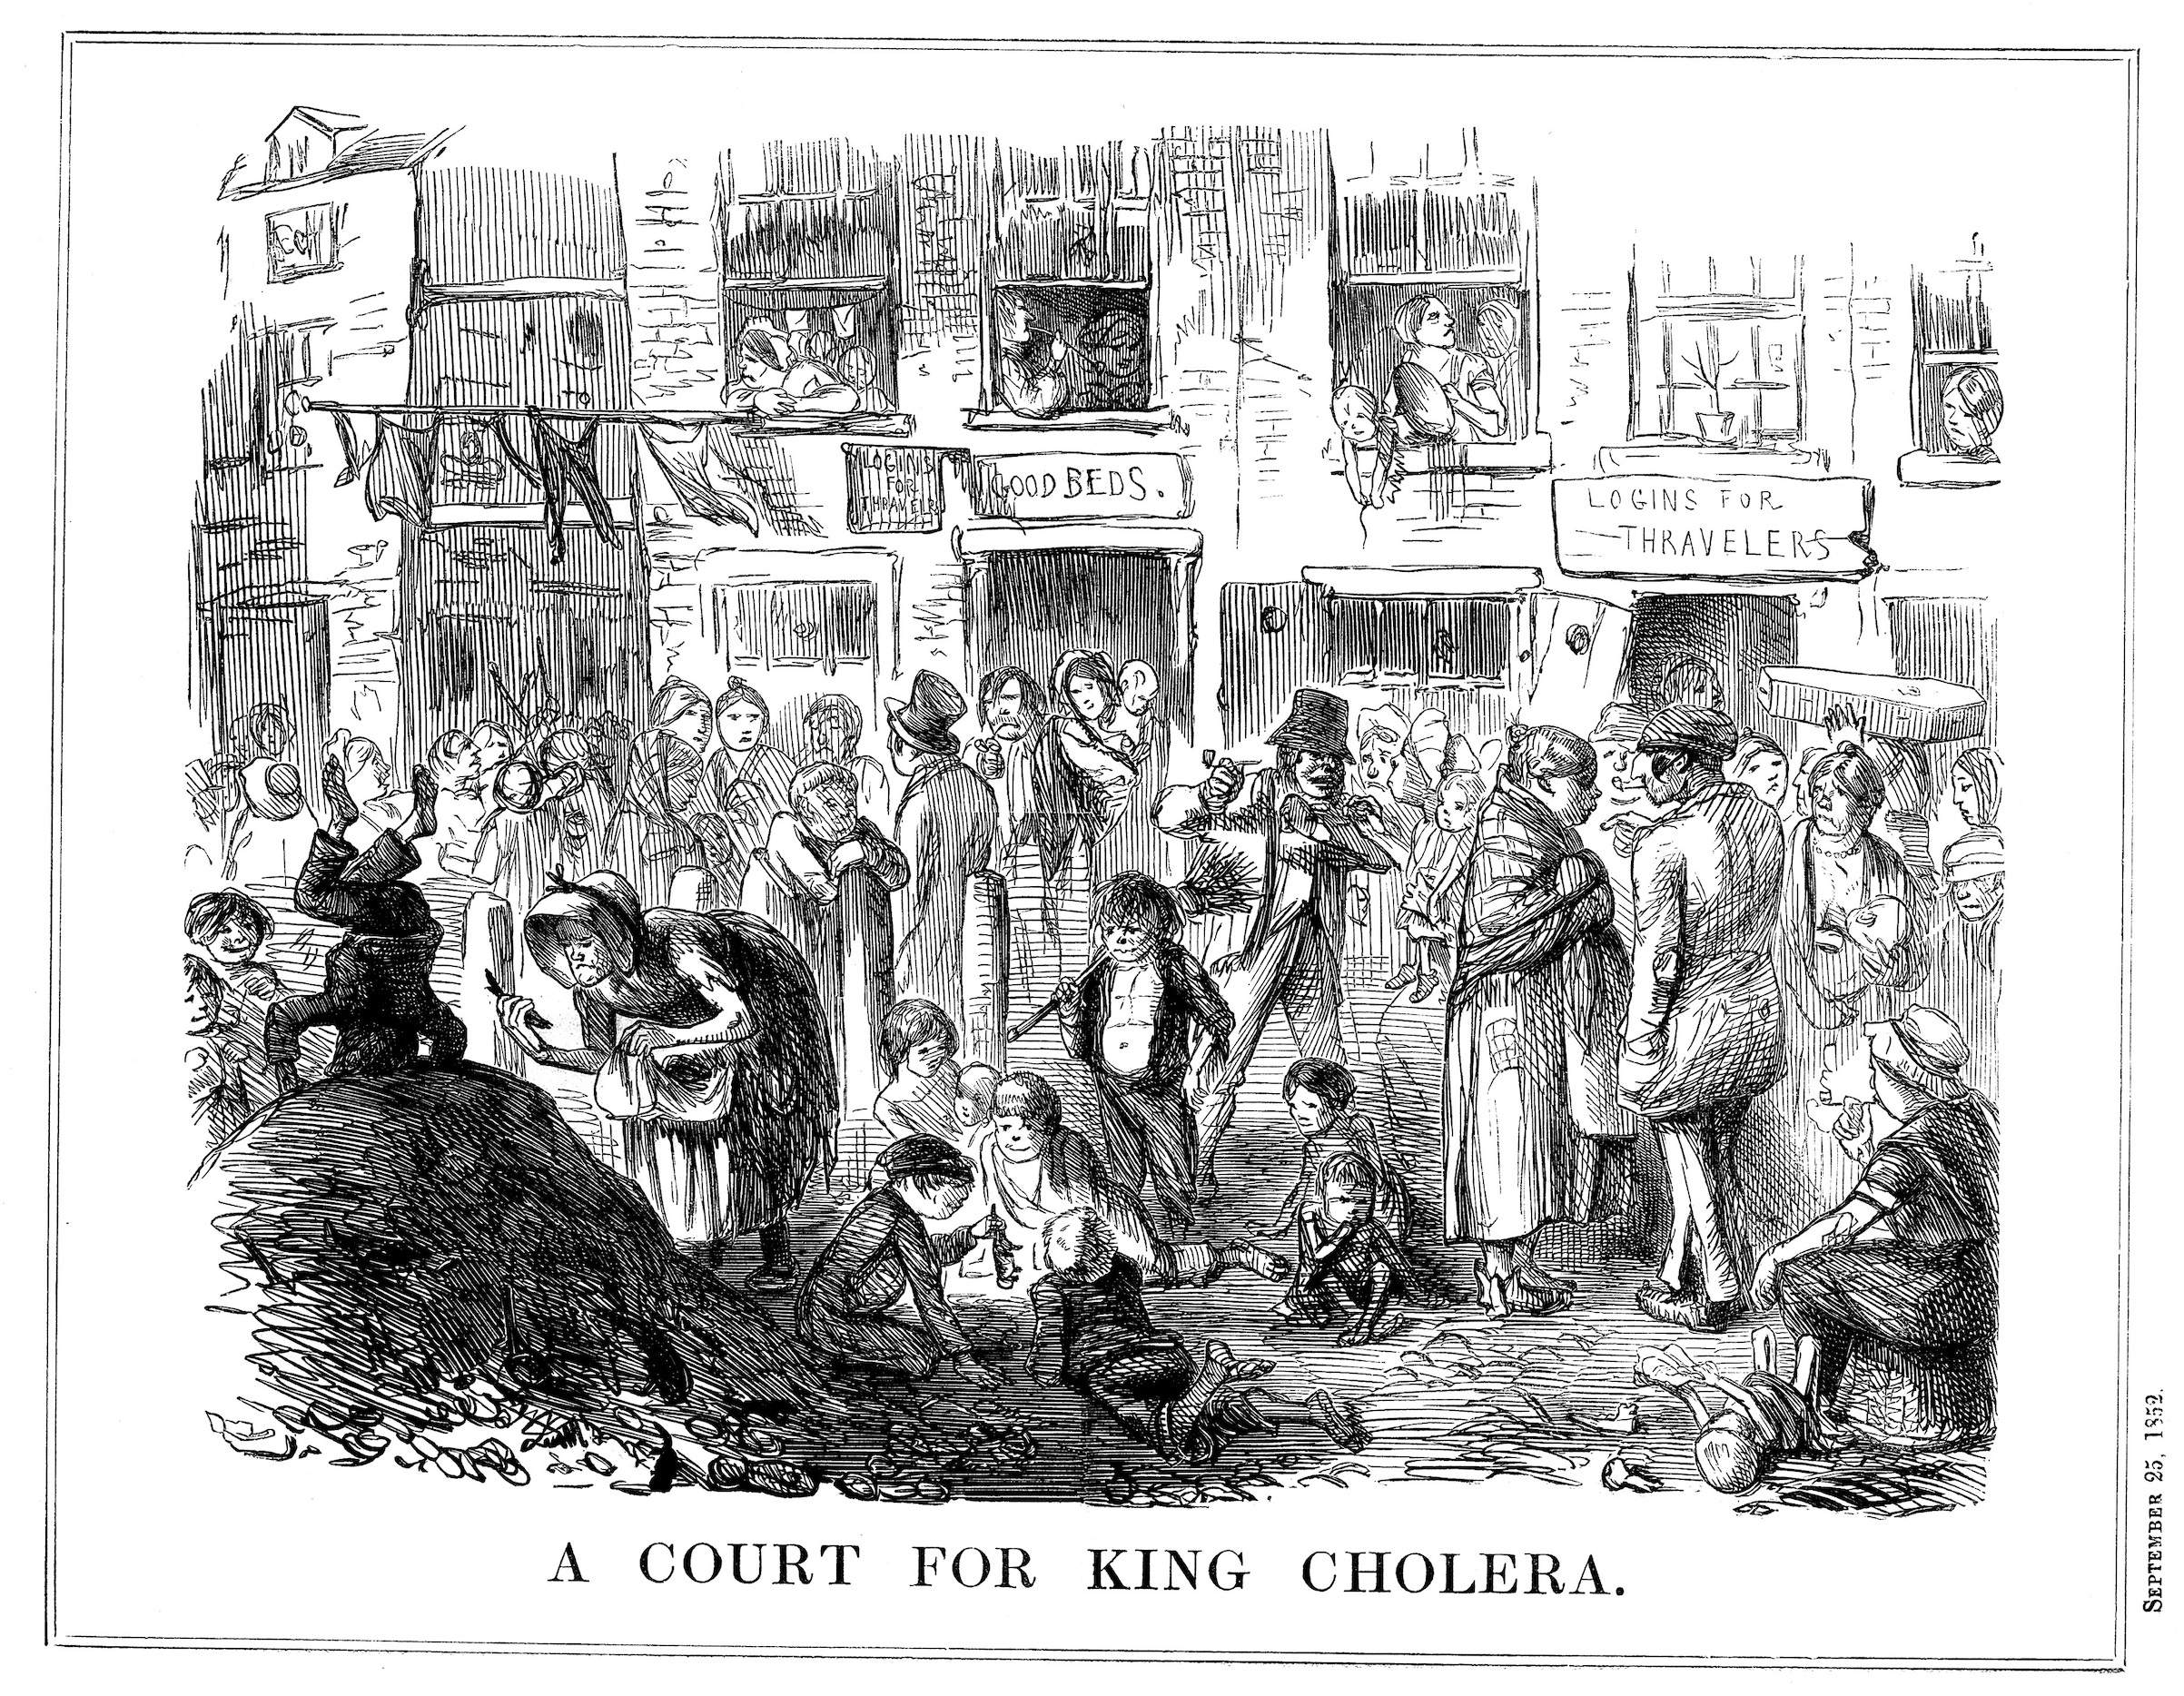 'A Court for King Cholera', 1852. A scene typical of the London slum. Cartoon from Punch. (London, Sept. 25,  1852).